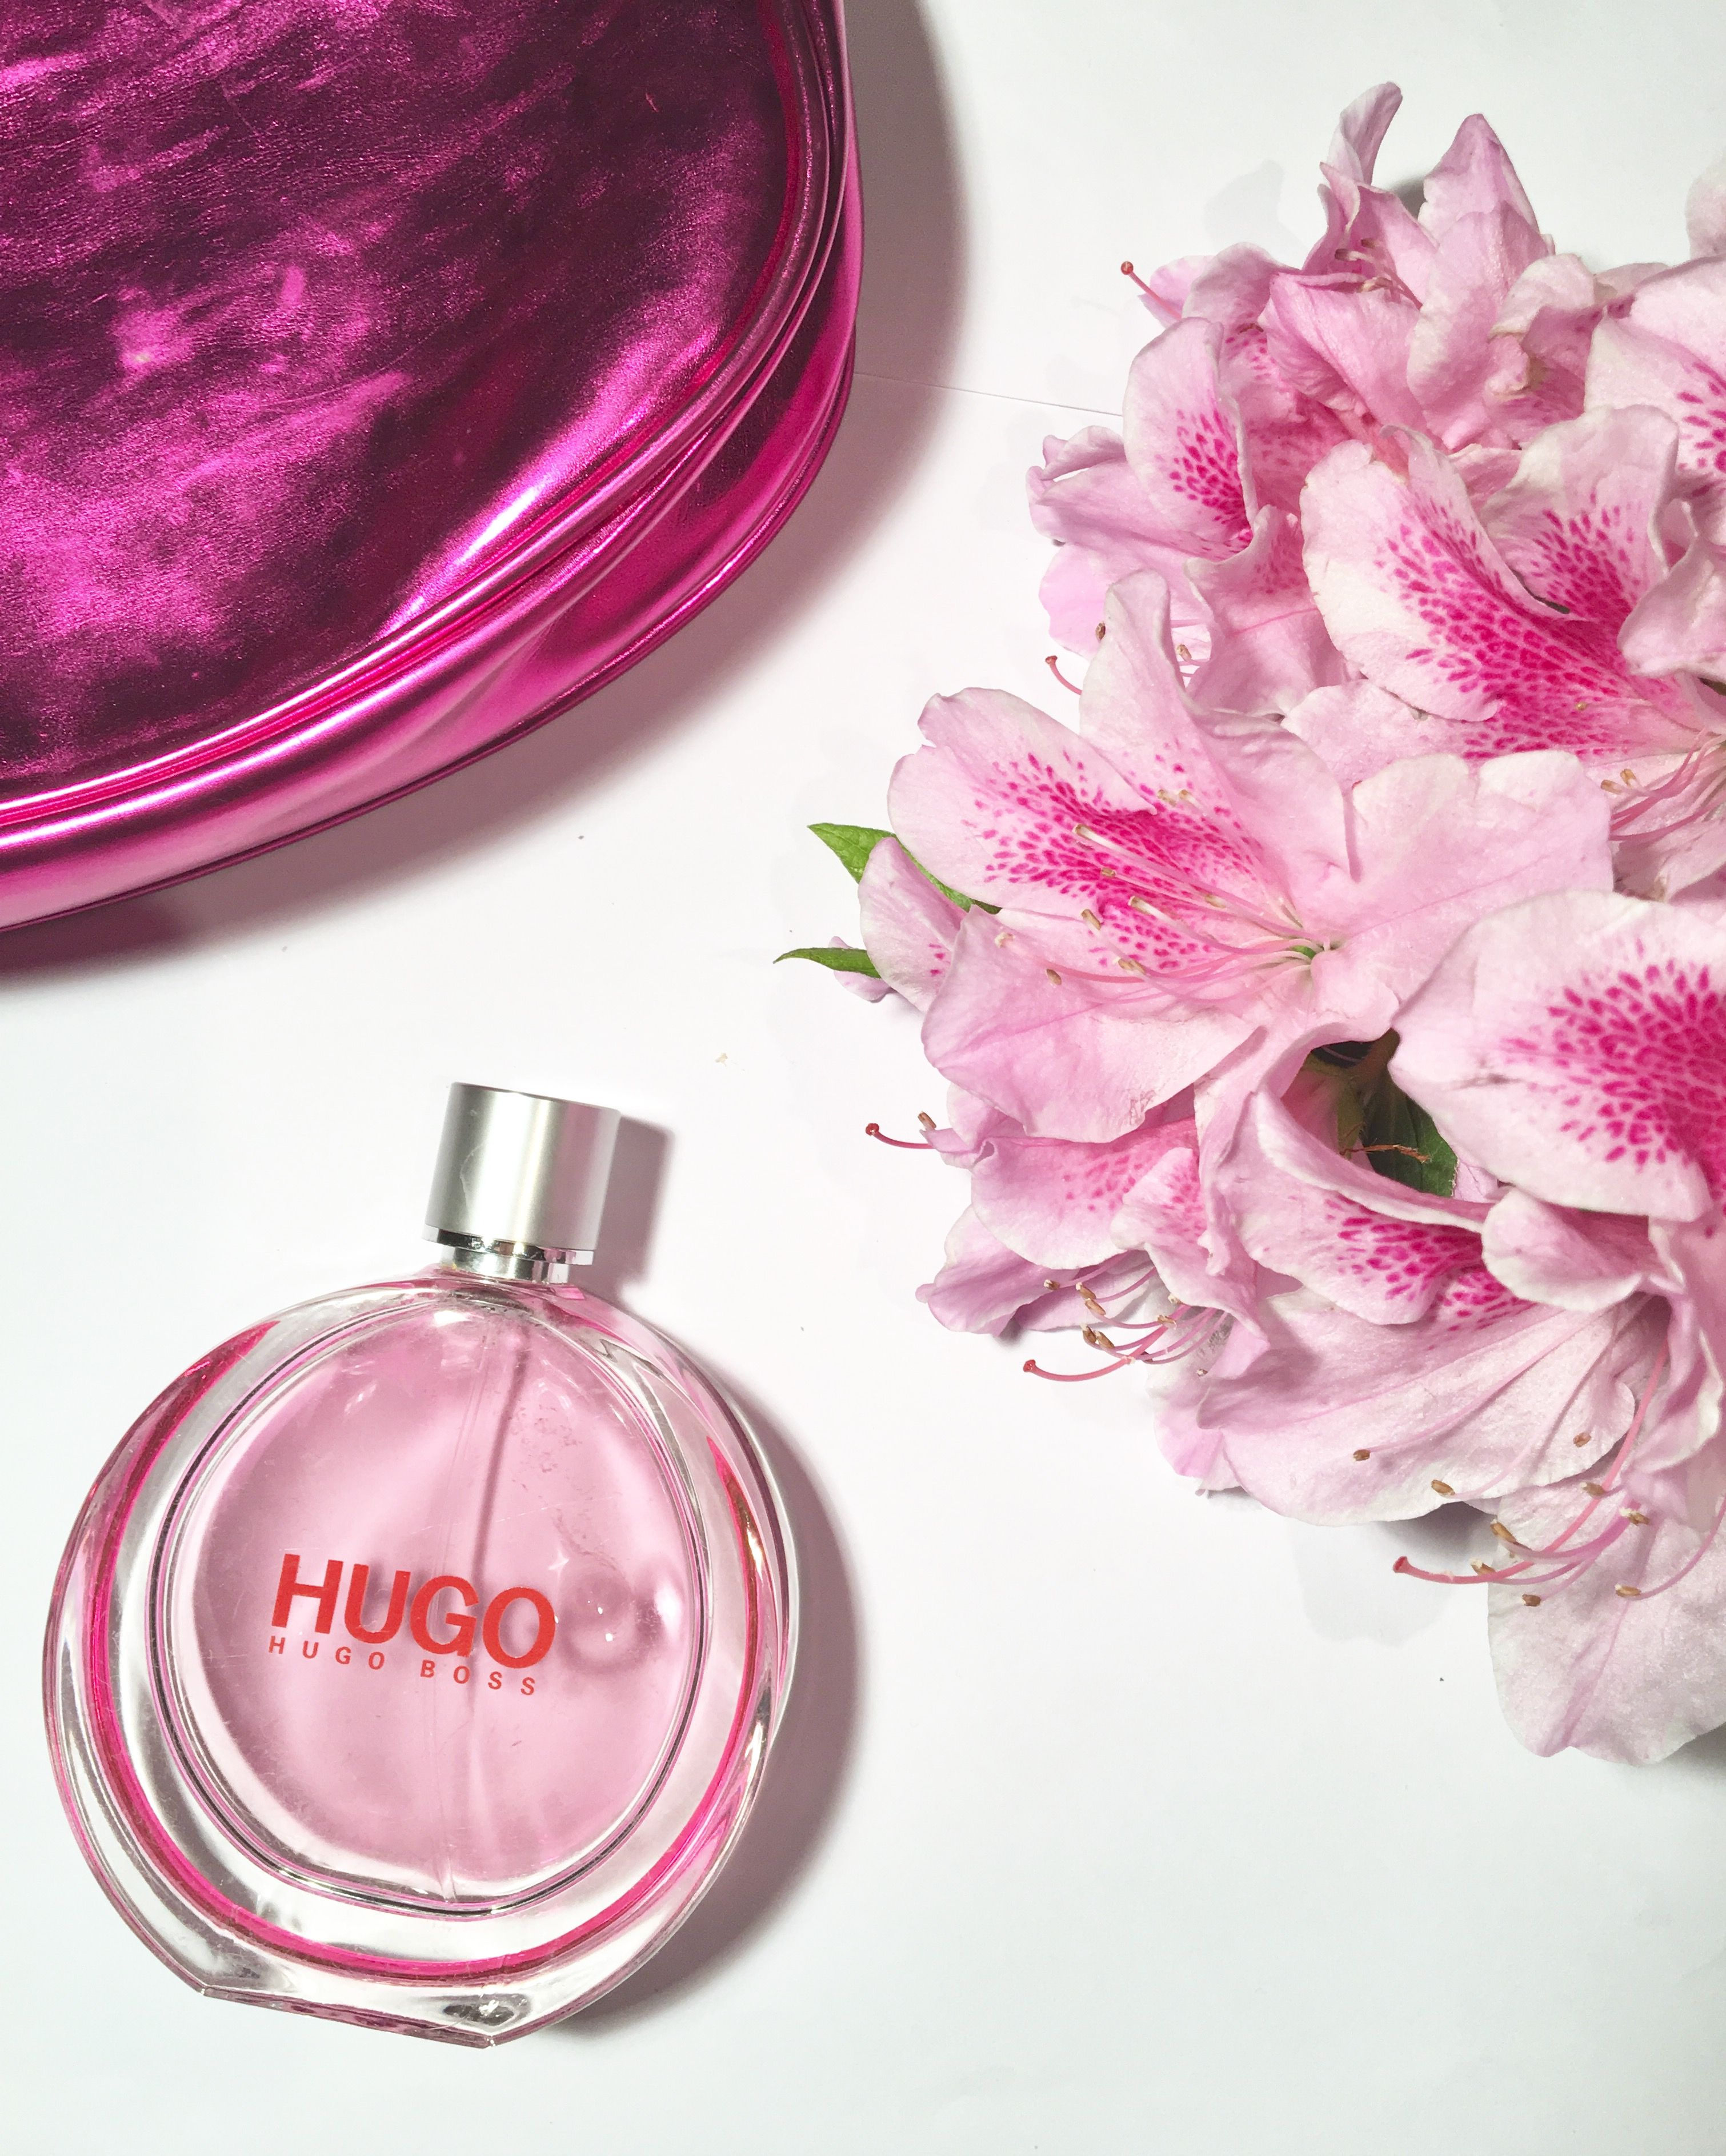 FRAGANCE Hugo Woman Extreme -Hugo Boss PINK POWER   LOVER 🌸 👛 💅🏼 🦄 🎀 0861611749